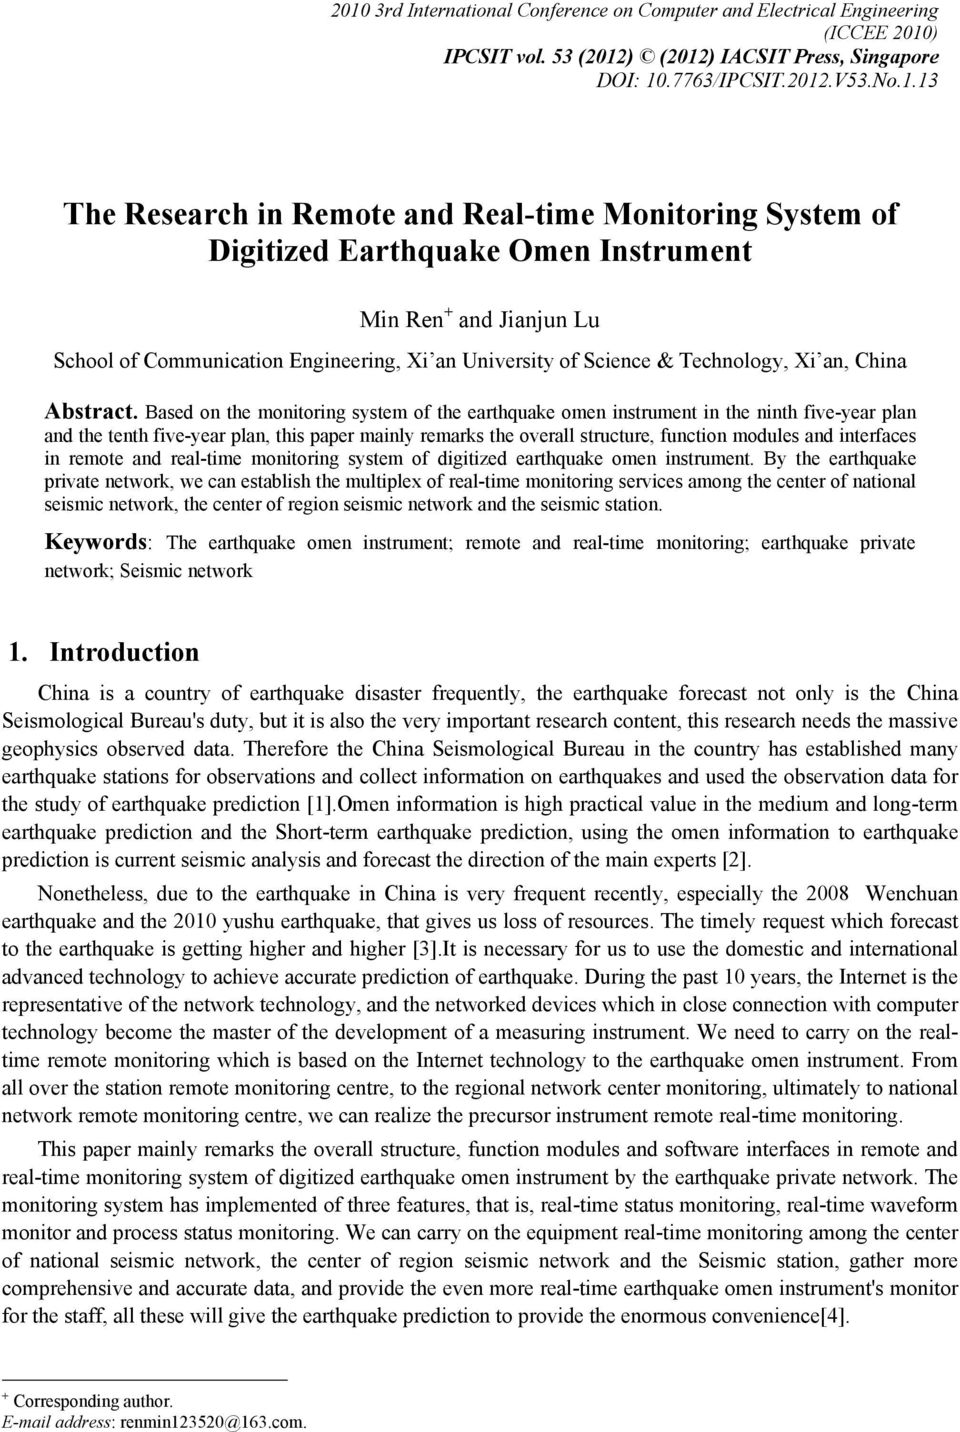 Based on the monitoring system of the earthquake omen instrument in the ninth five-year plan and the tenth five-year plan, this paper mainly remarks the overall structure, function modules and